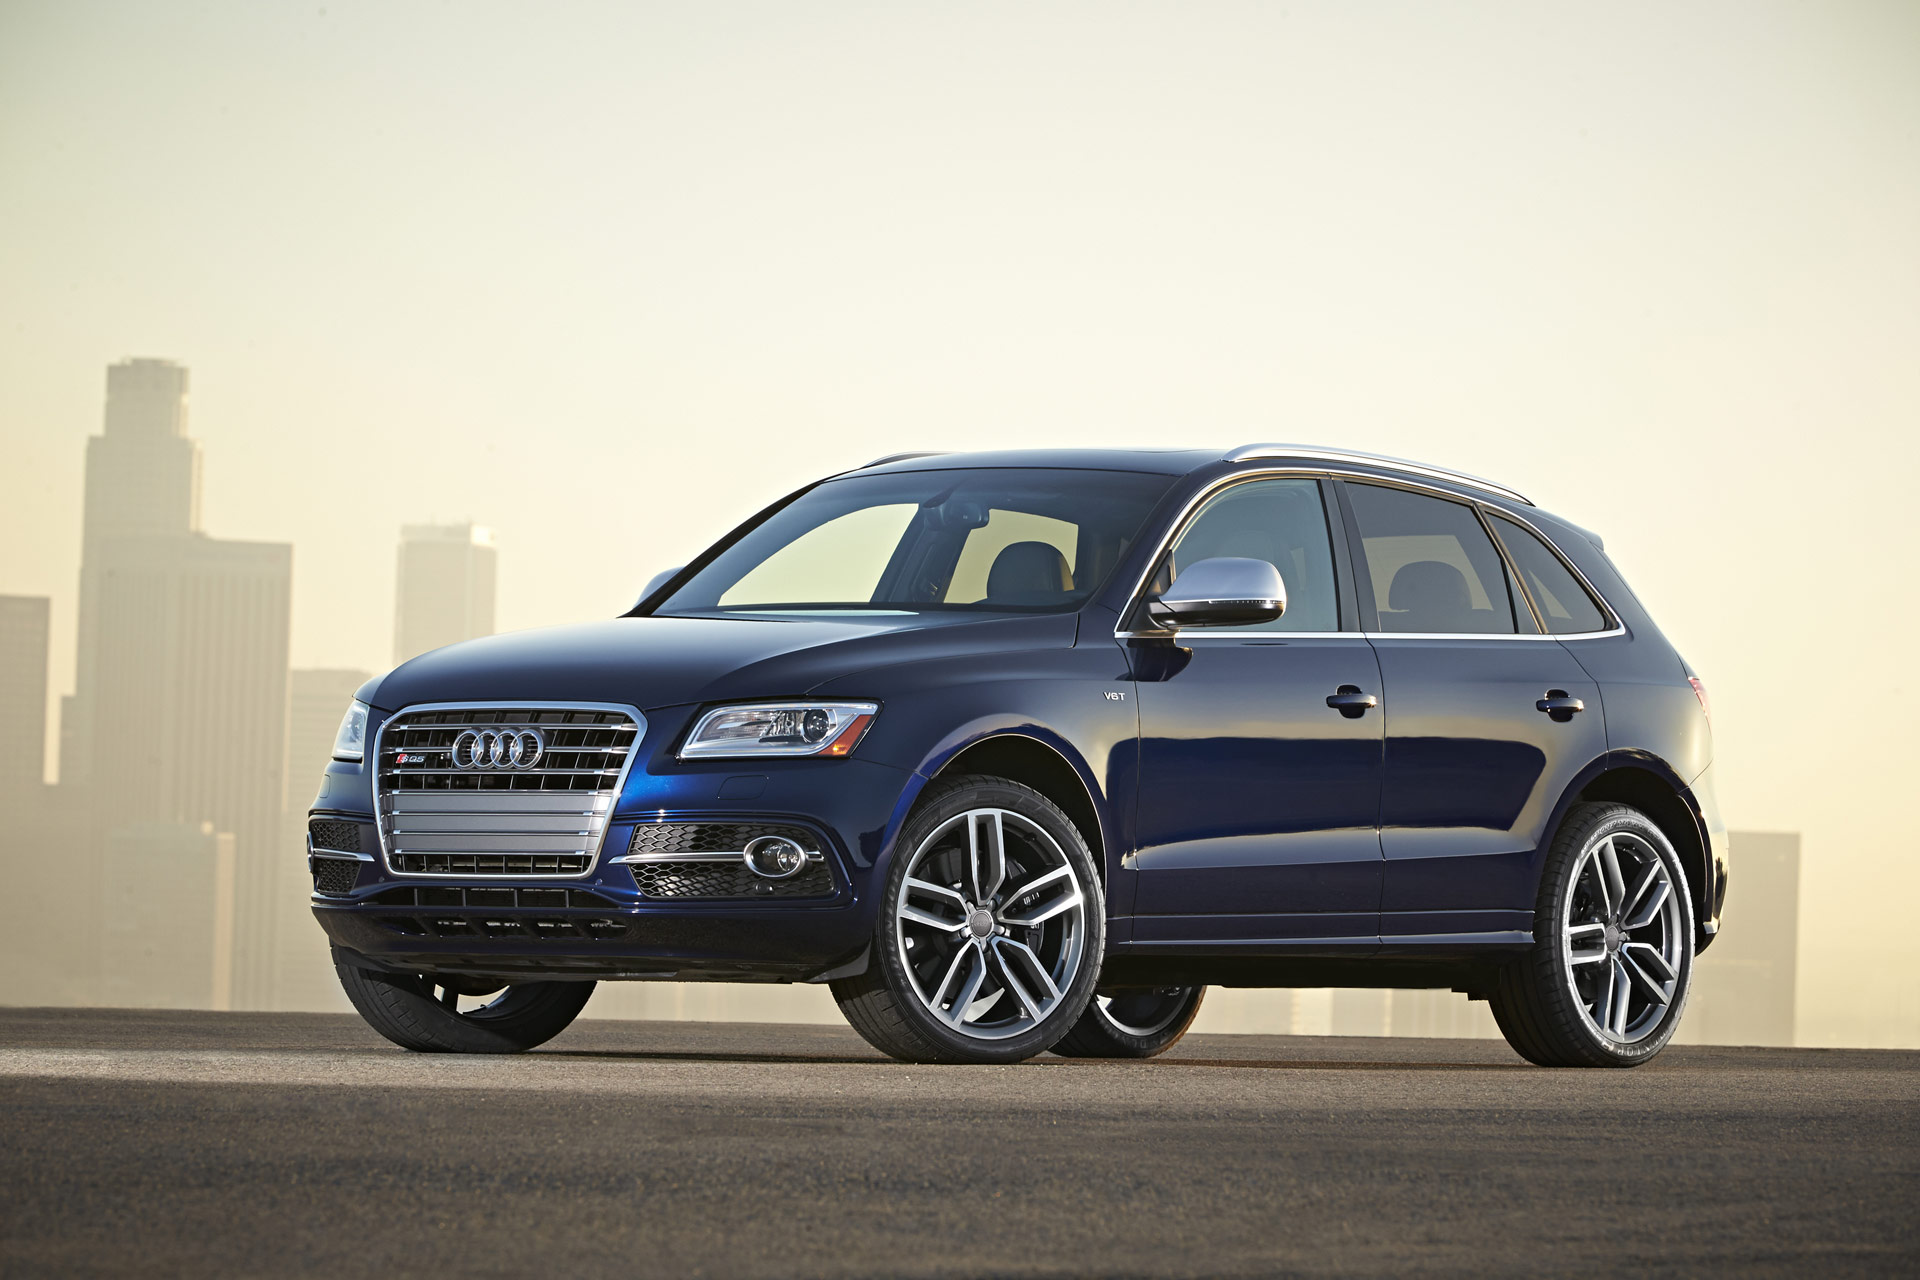 2014 Audi Q5 News And Information Research And History